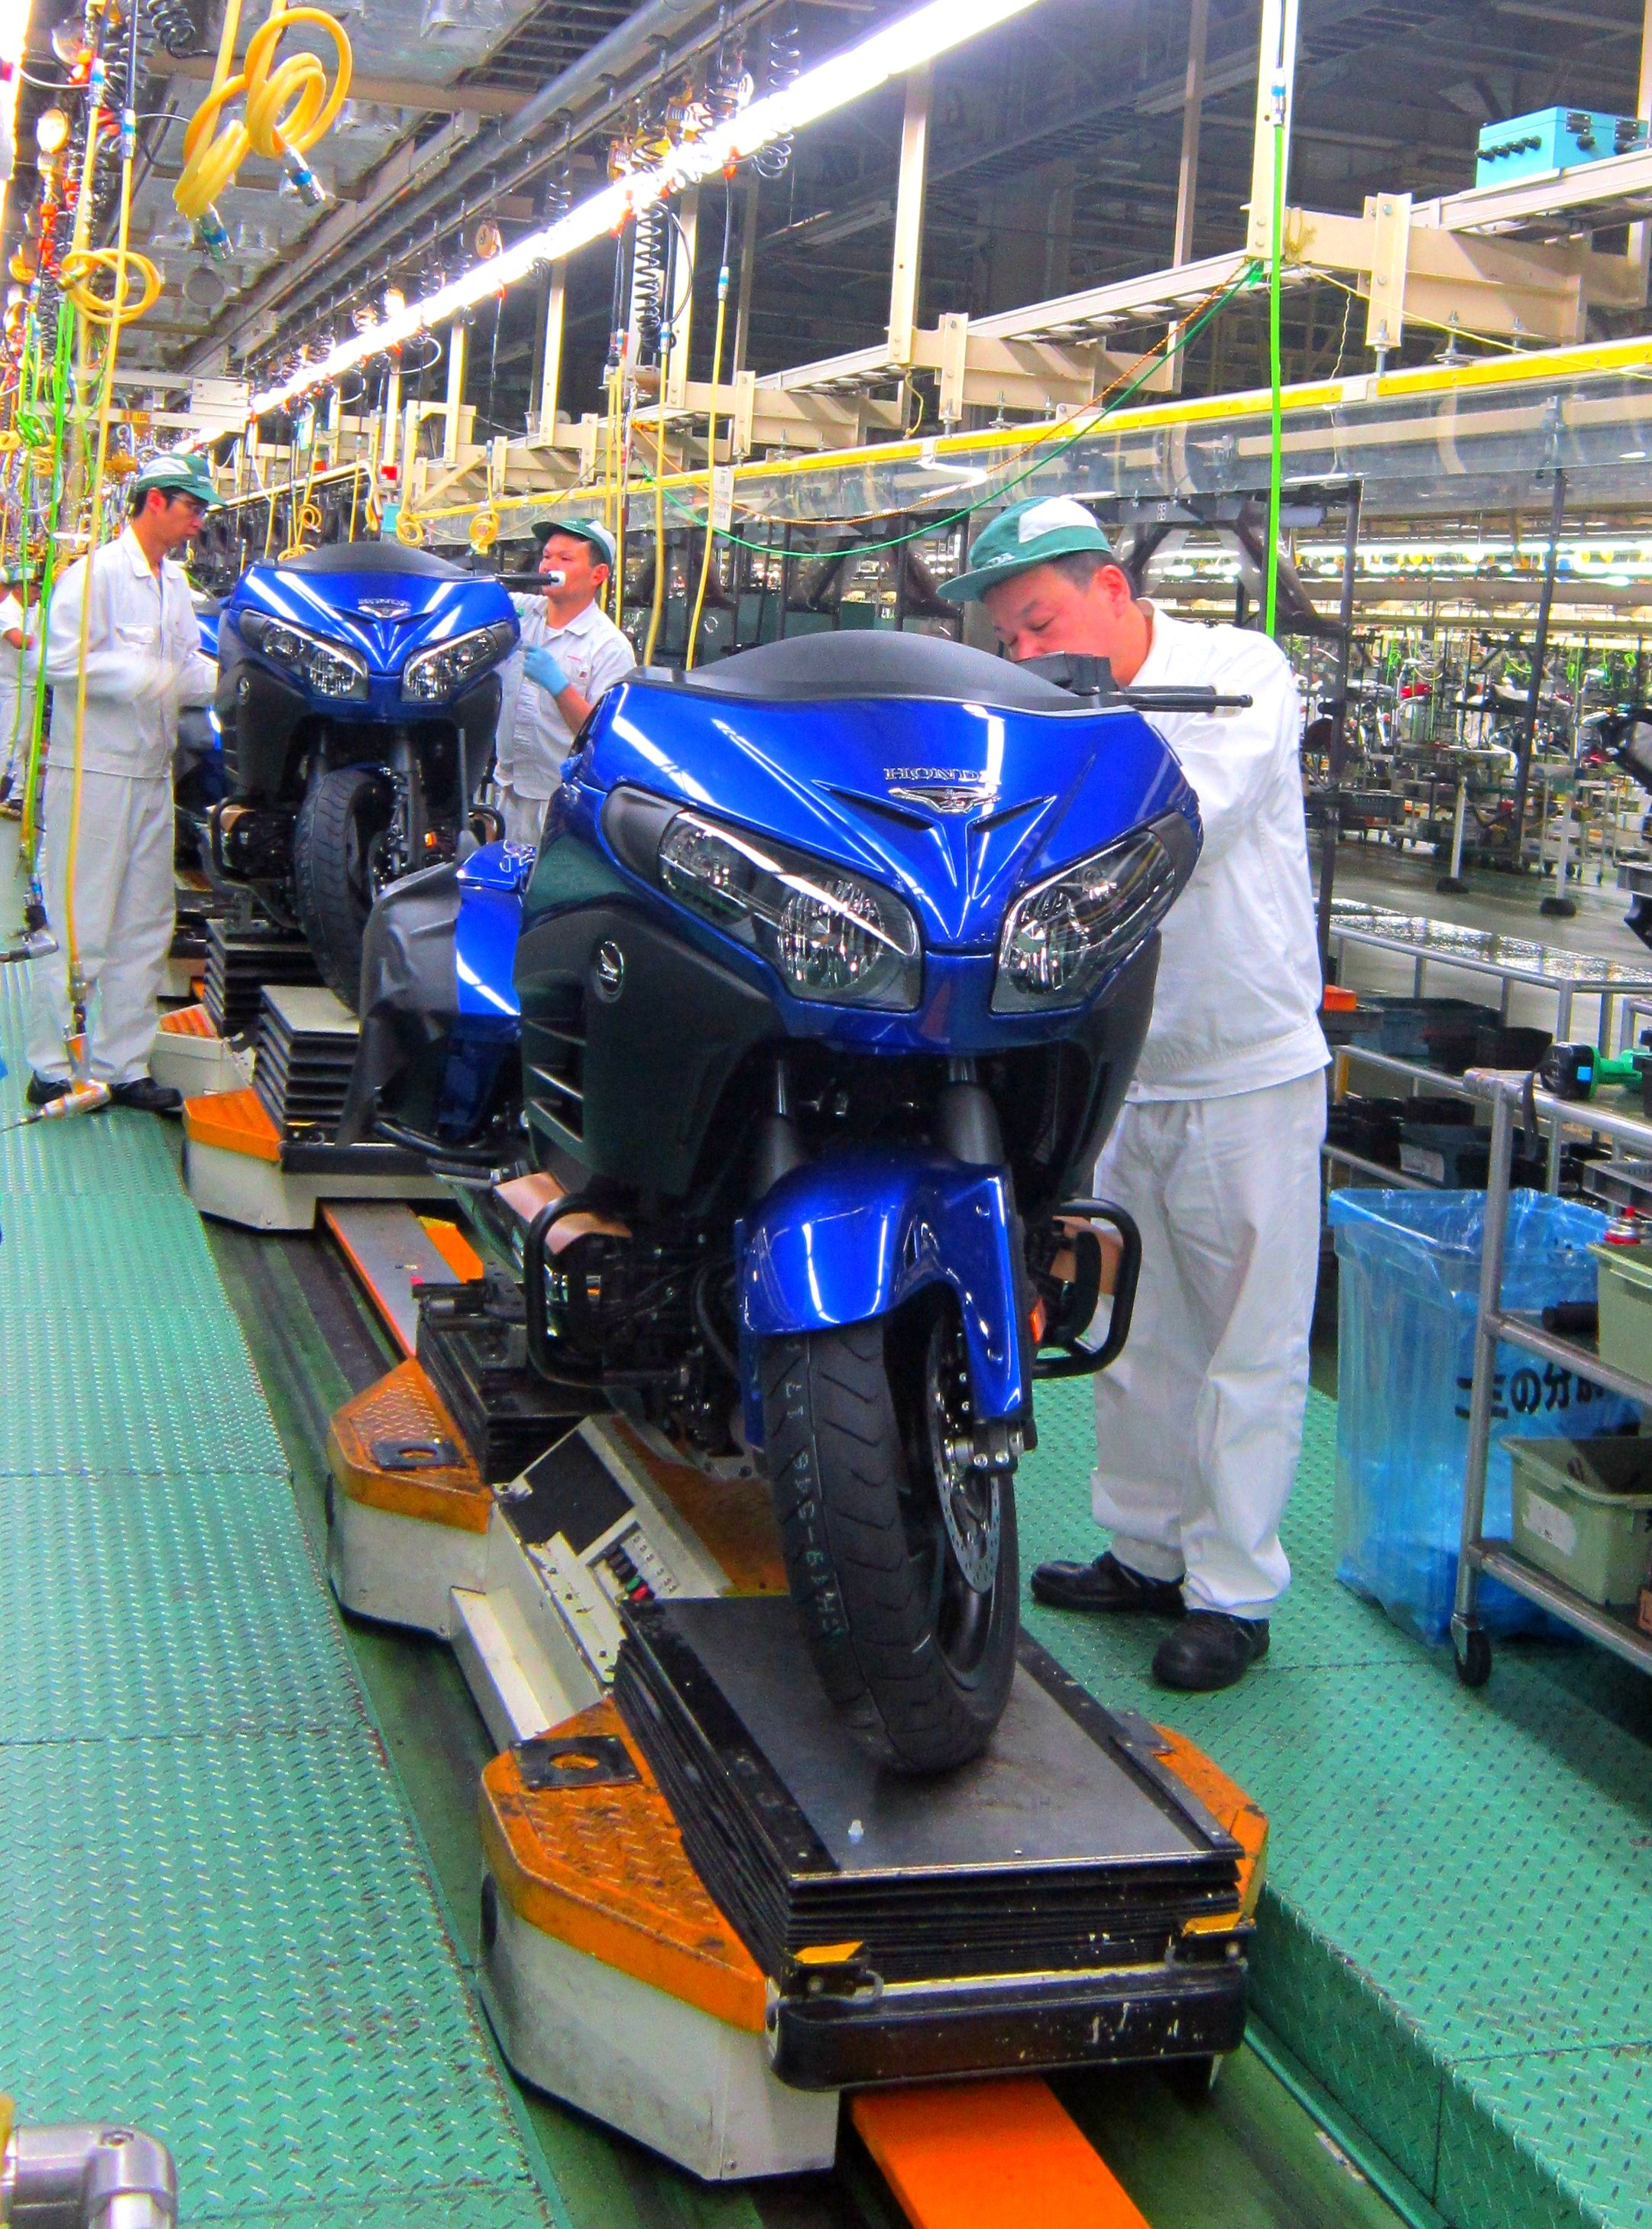 Honda Reaches 300 Million Motorcycles Milestone With Gold